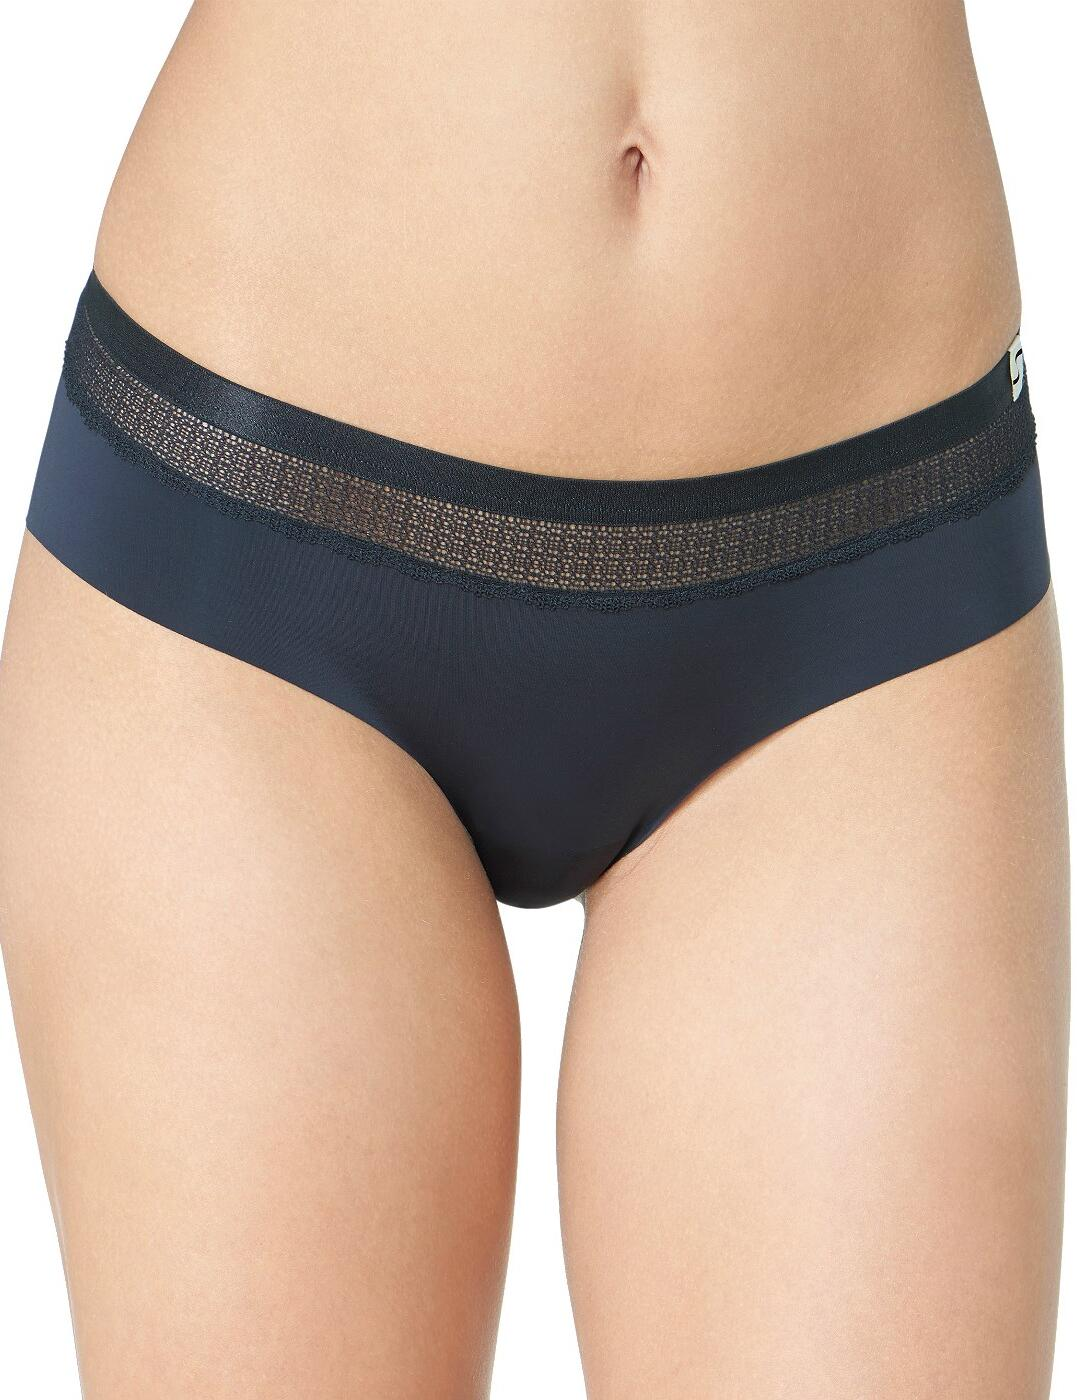 10186053 Sloggi S Silhouette Low Rise Cheeky Hipster Briefs - 10186053 Black